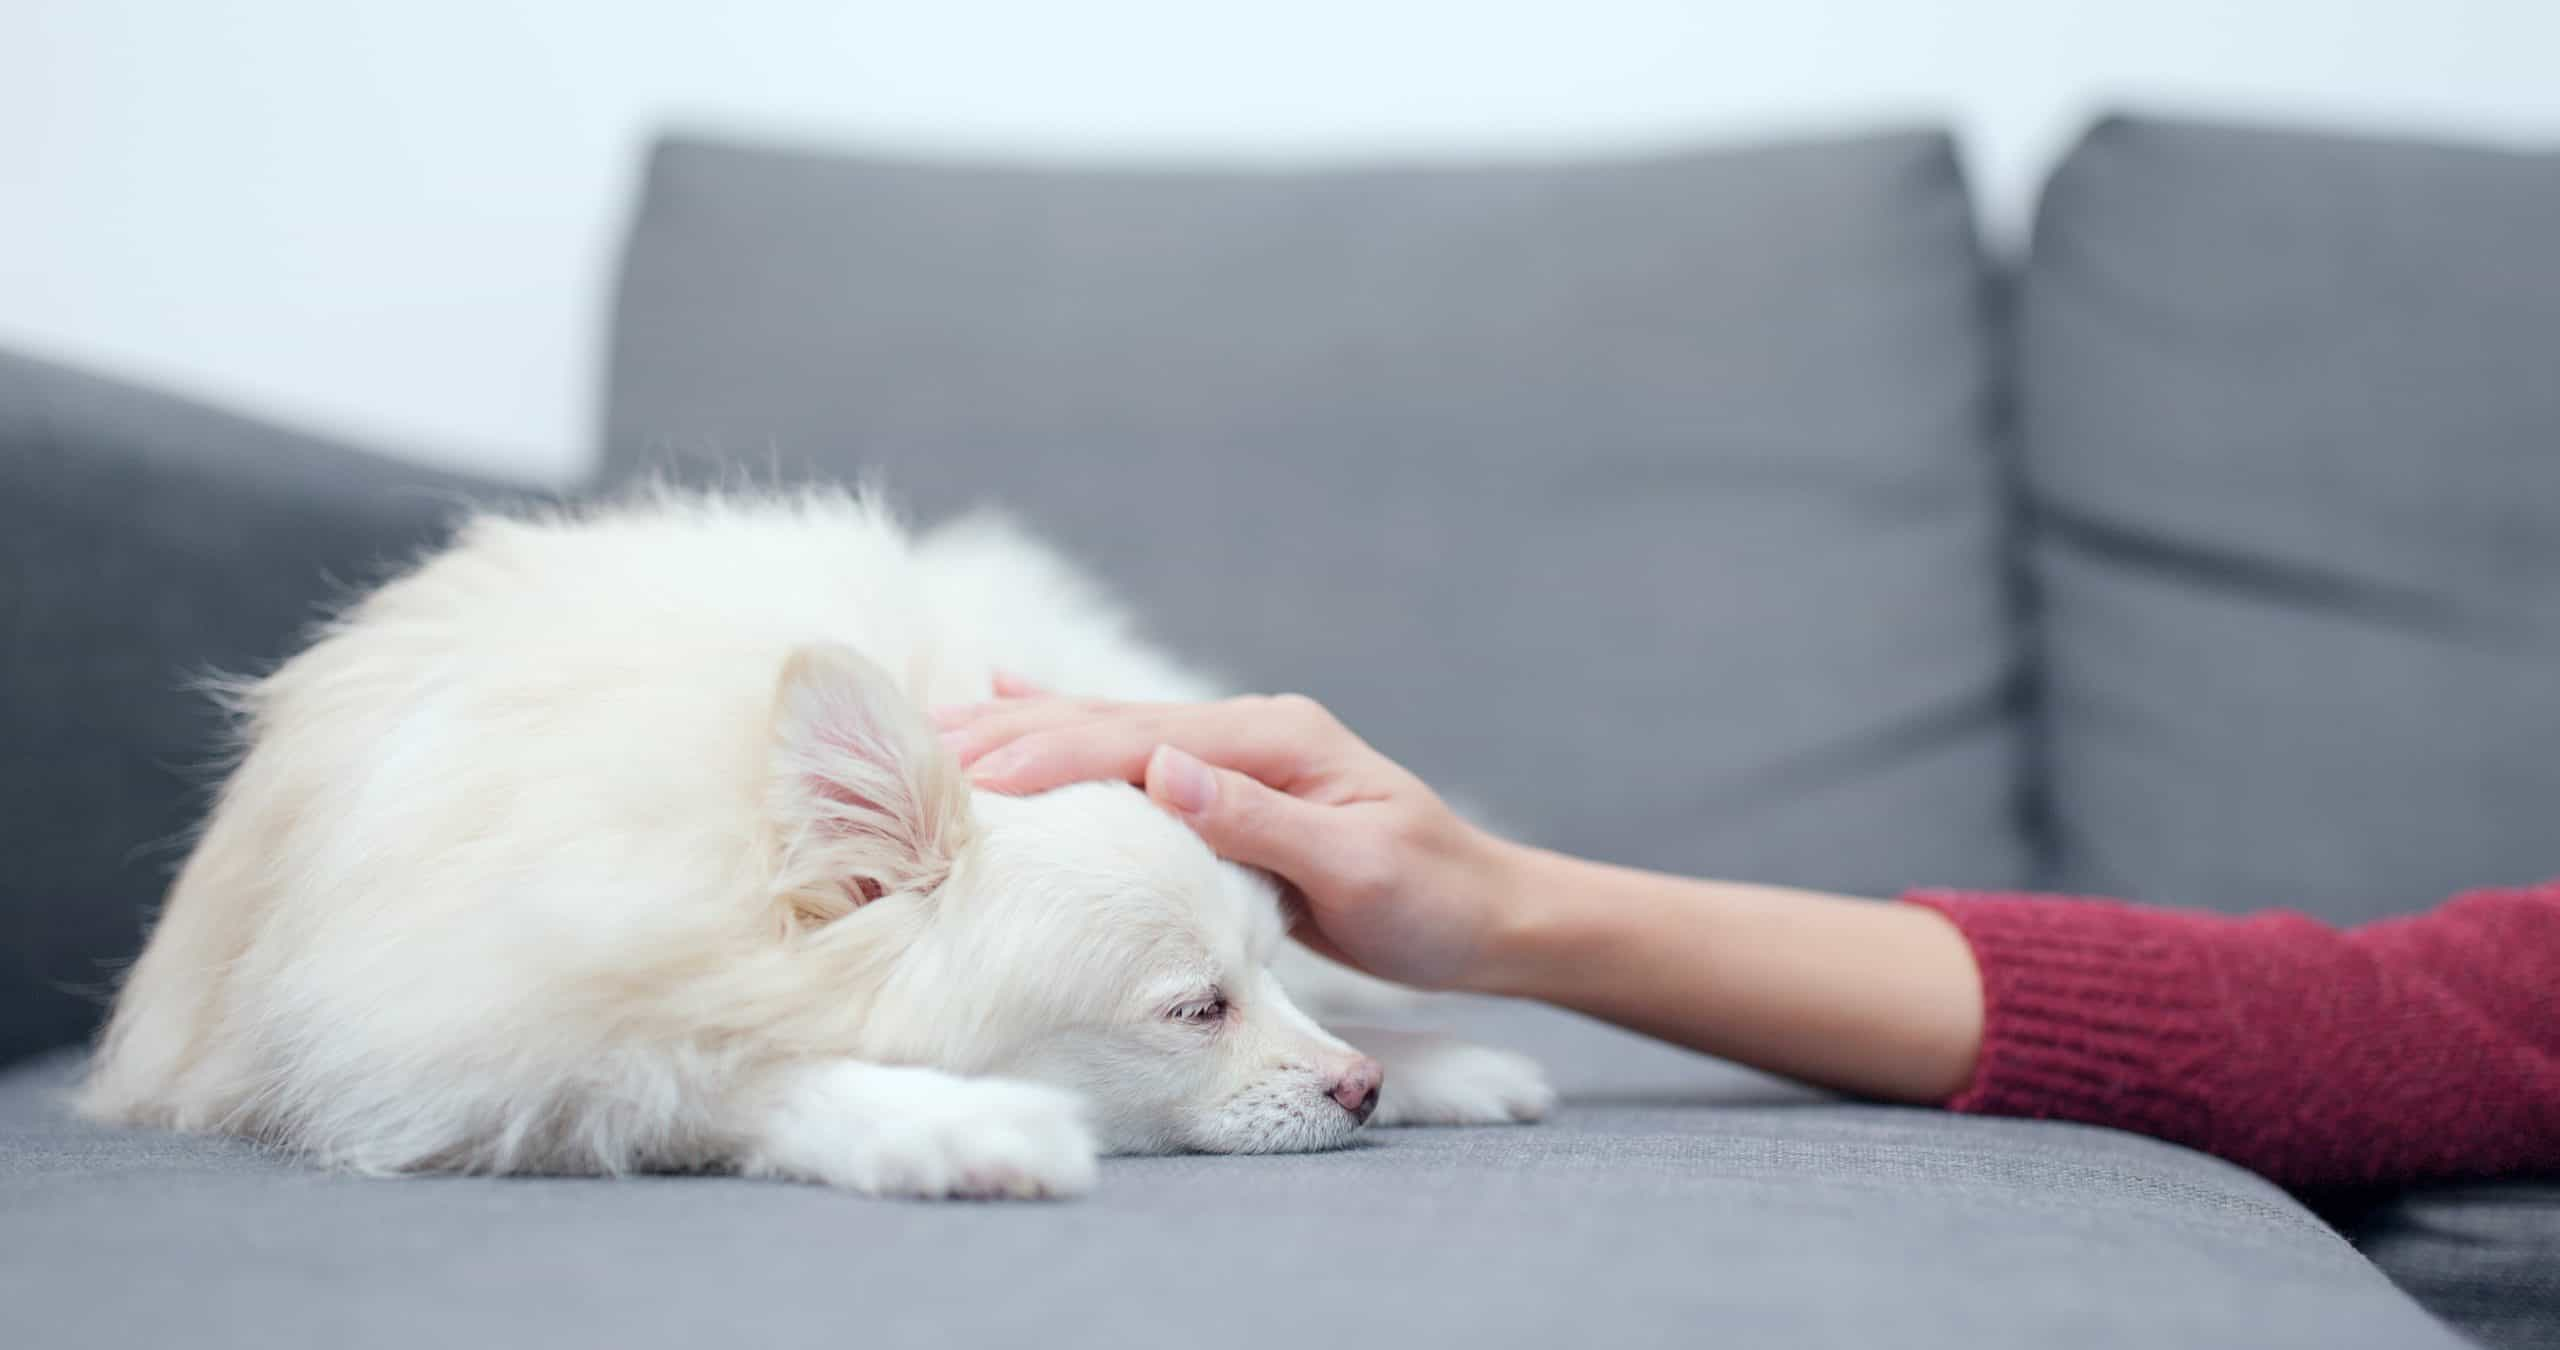 Woman pets sick chihuahua. Even after you find the most nutritious food for your pet, you may still face the challenge of getting a dog to eat.